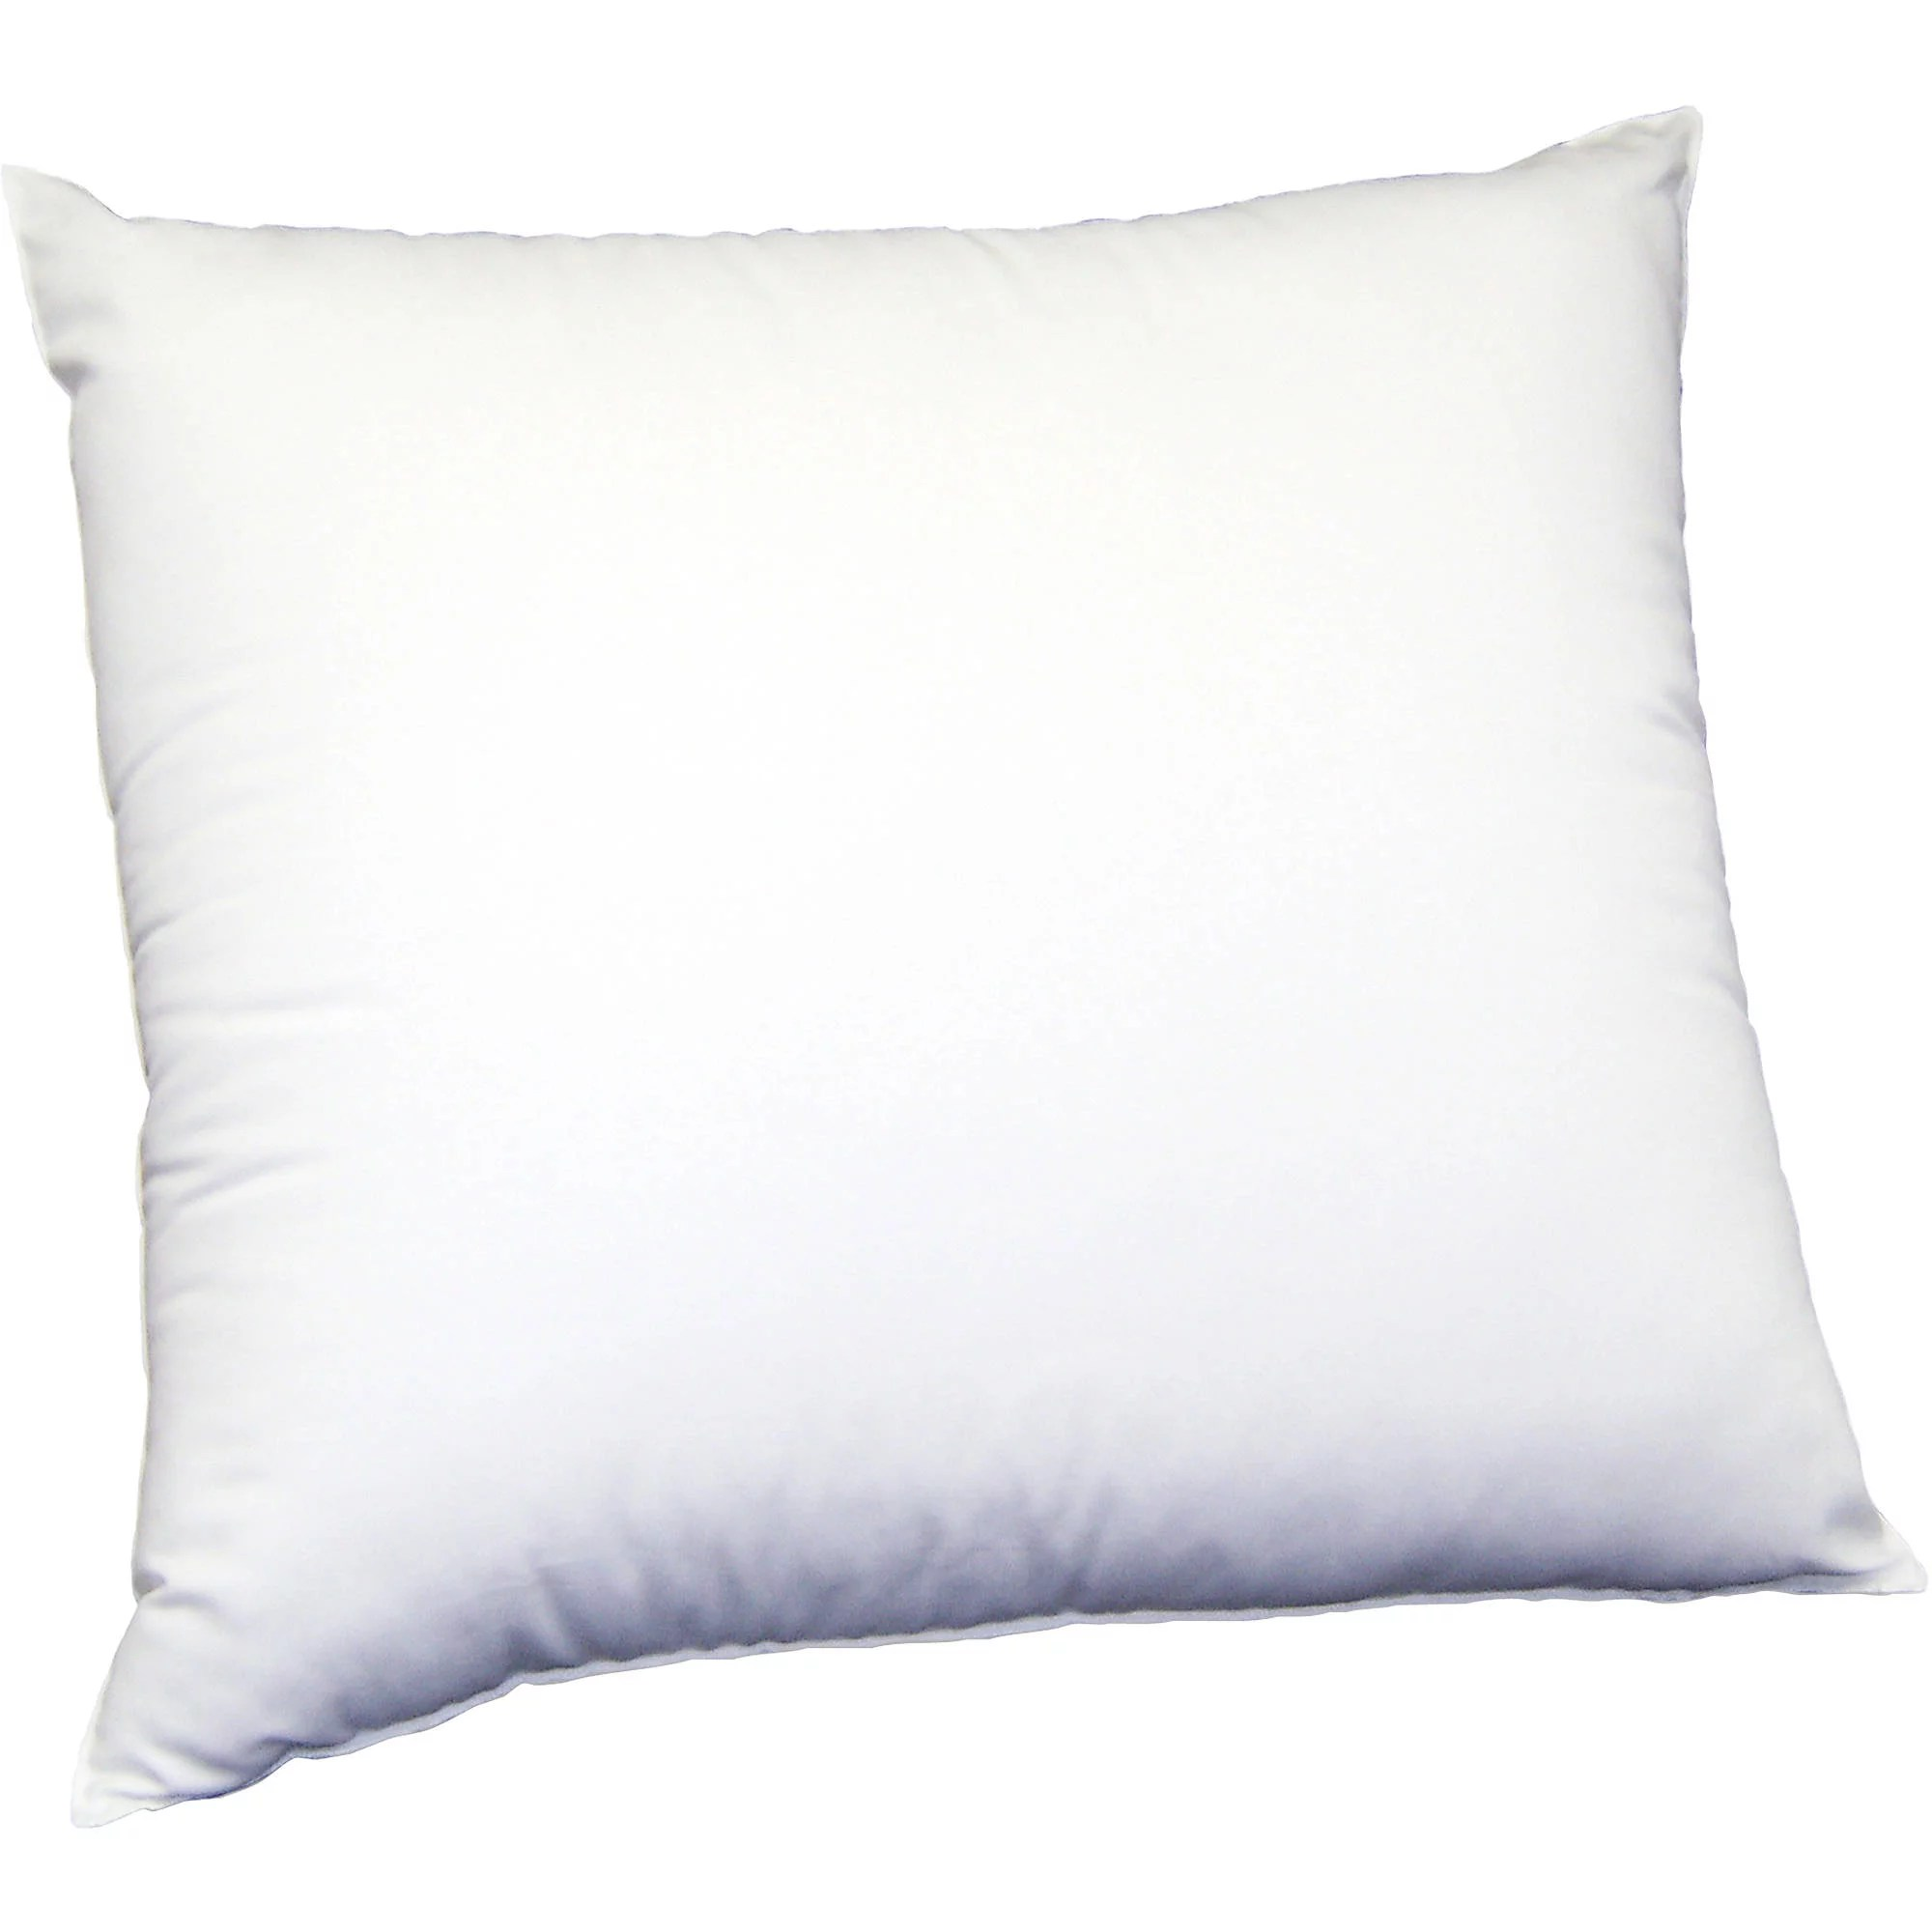 Beautyrest Euro Pillow for Square Decorative Shams at Home